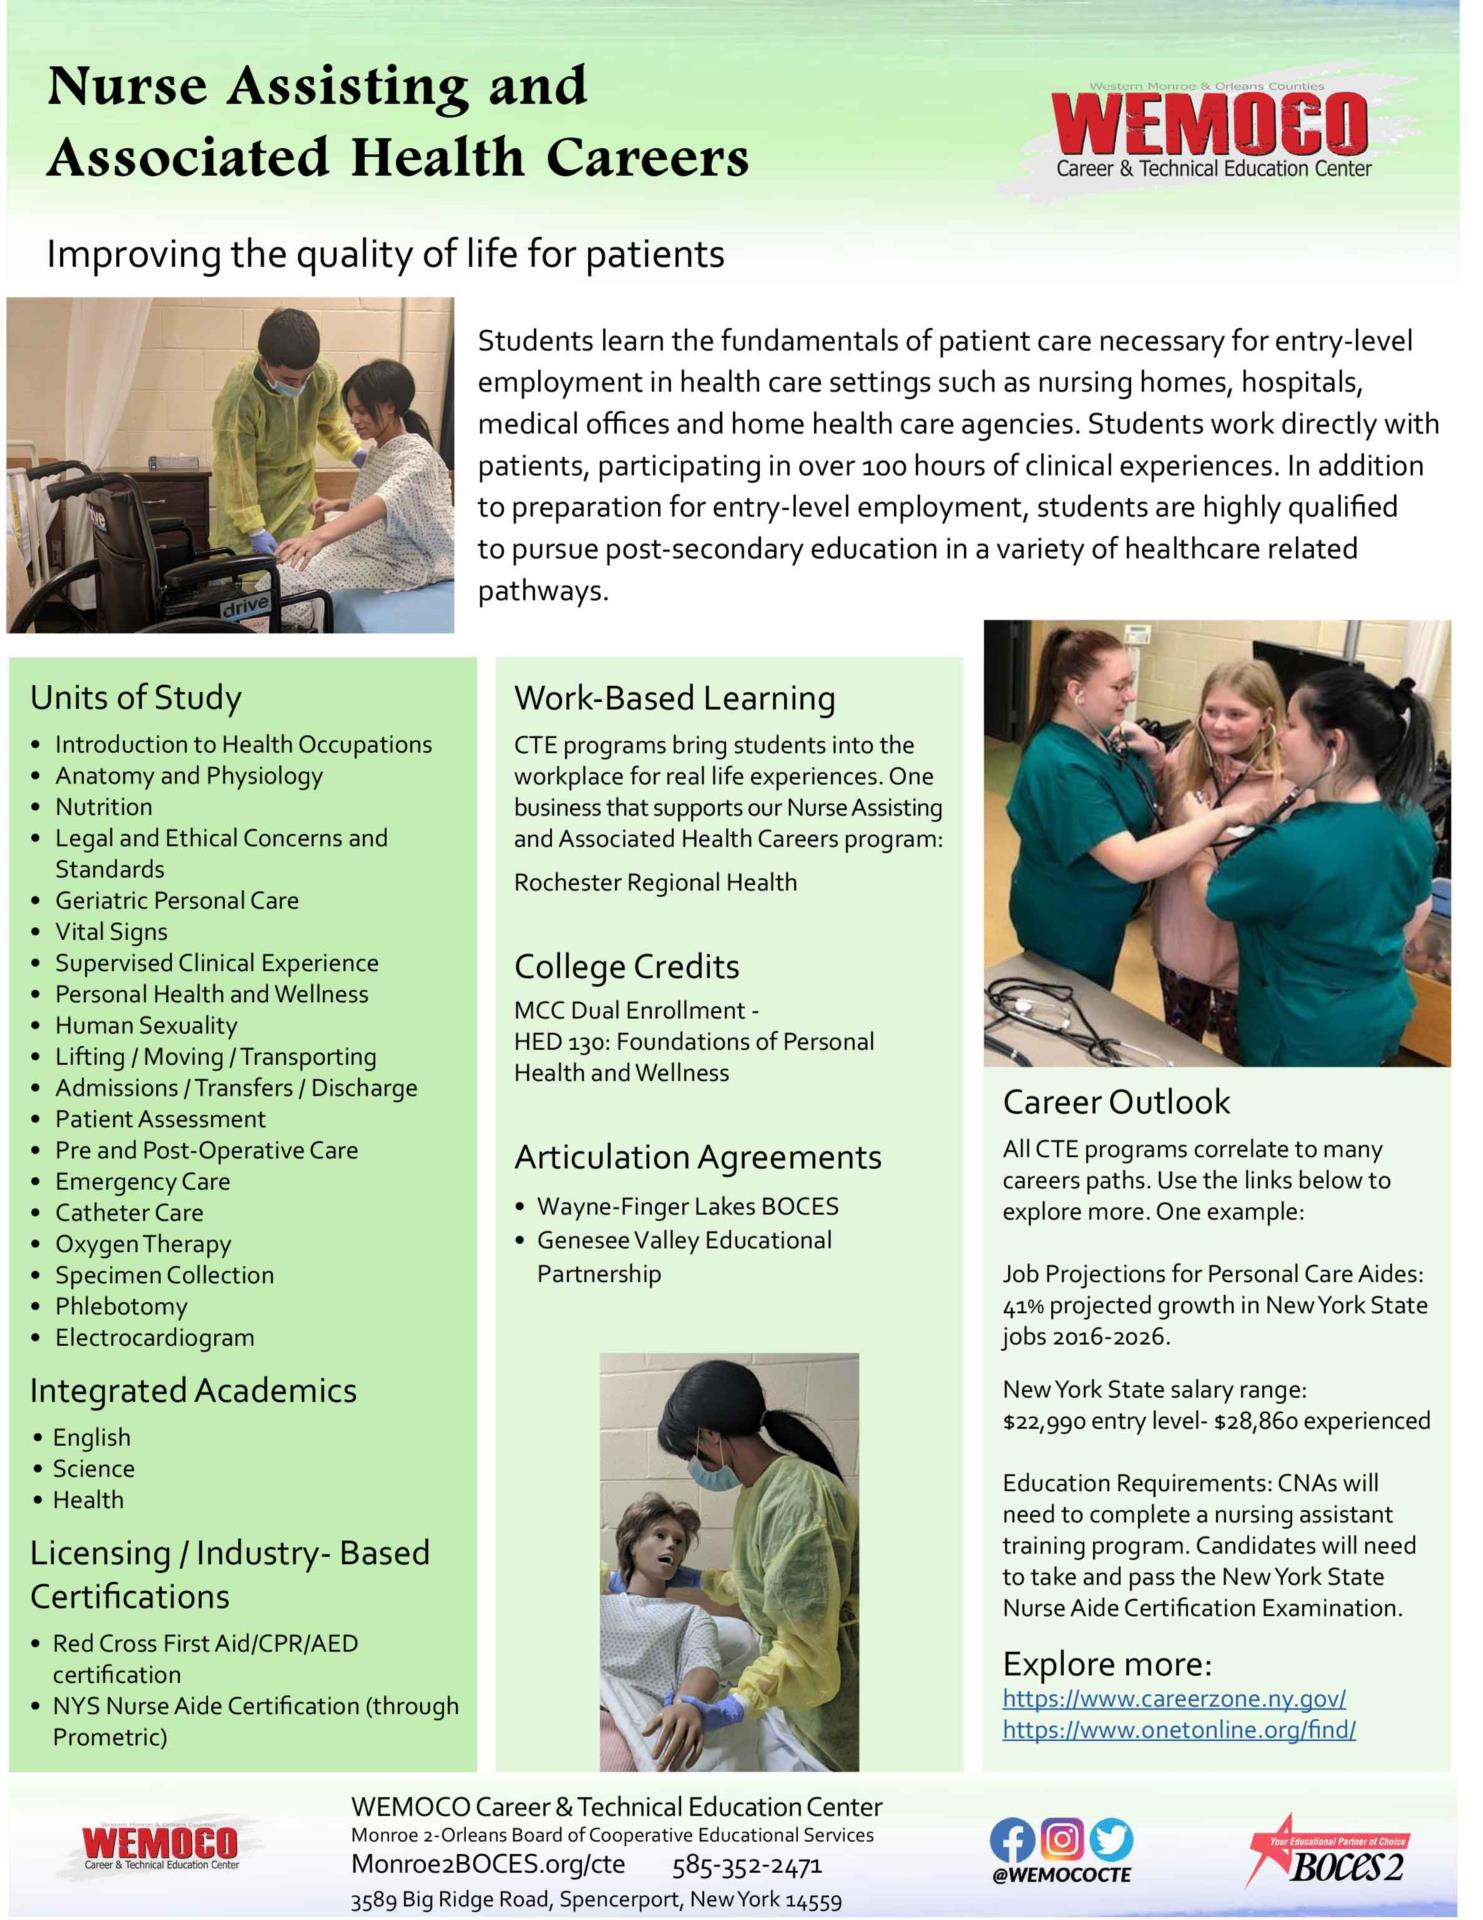 Download a PDF overview of the Nurse Assisting and Associated Health Careers program information